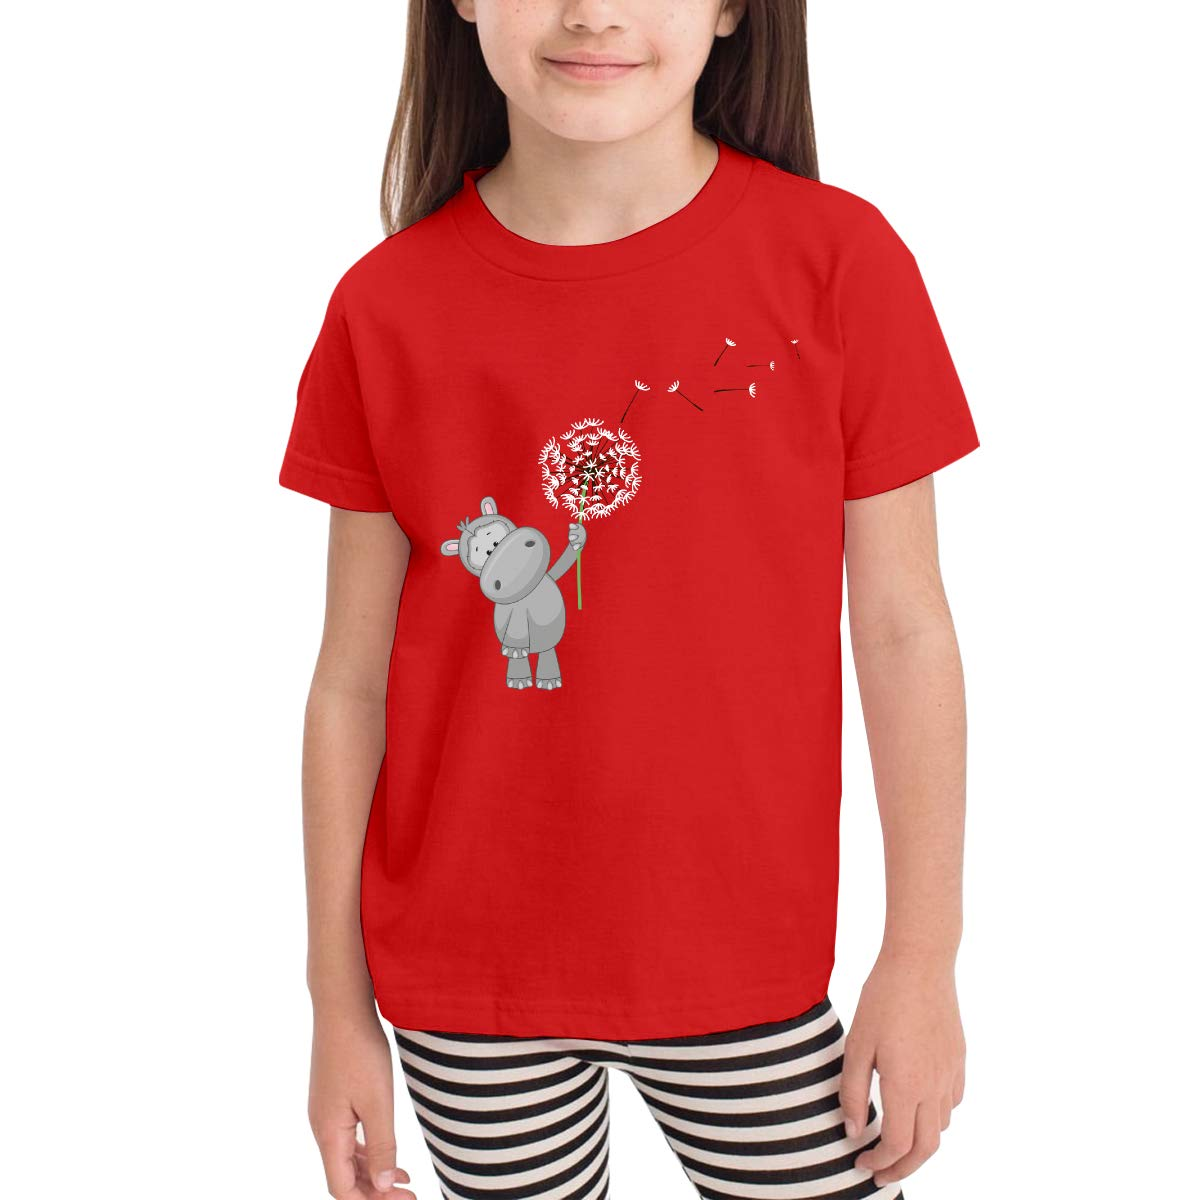 Kids T-Shirt Tops Black Hippo and Dandelion Unisex Youths Short Sleeve T-Shirt